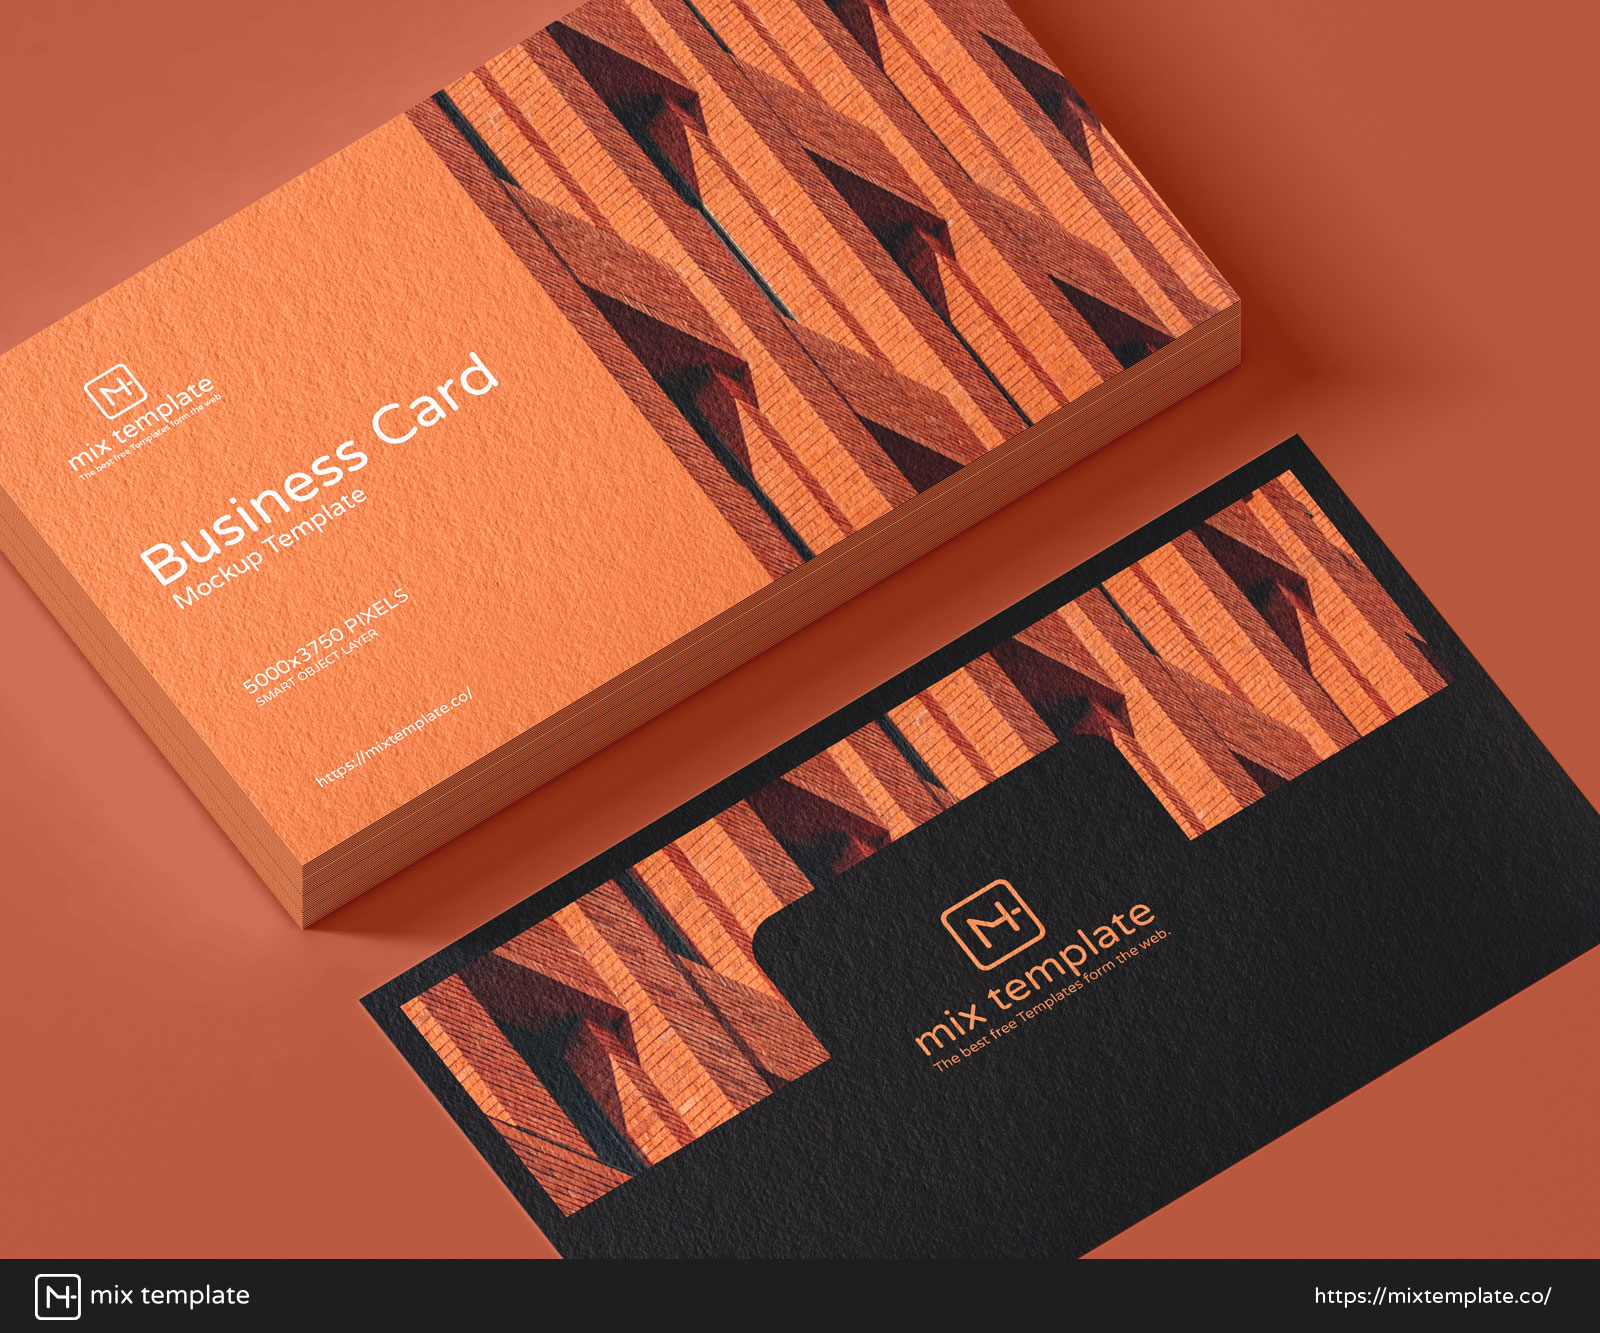 Free-Business-Card-Mockup-Template-38